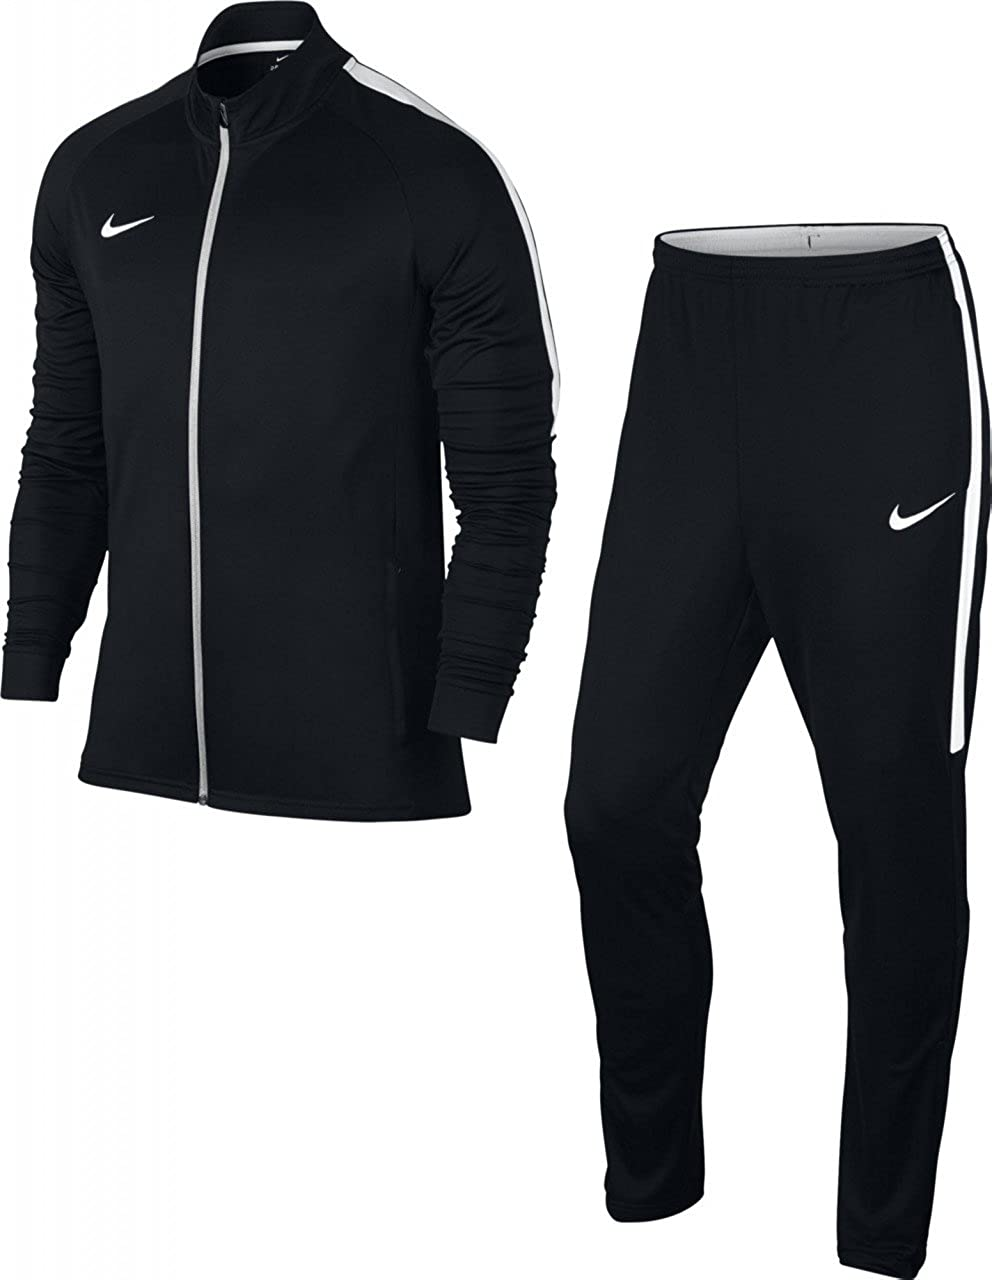 6445e564d Amazon.com: Nike Dry Training Academy Men's Tracksuit (XL, Black/White):  Clothing